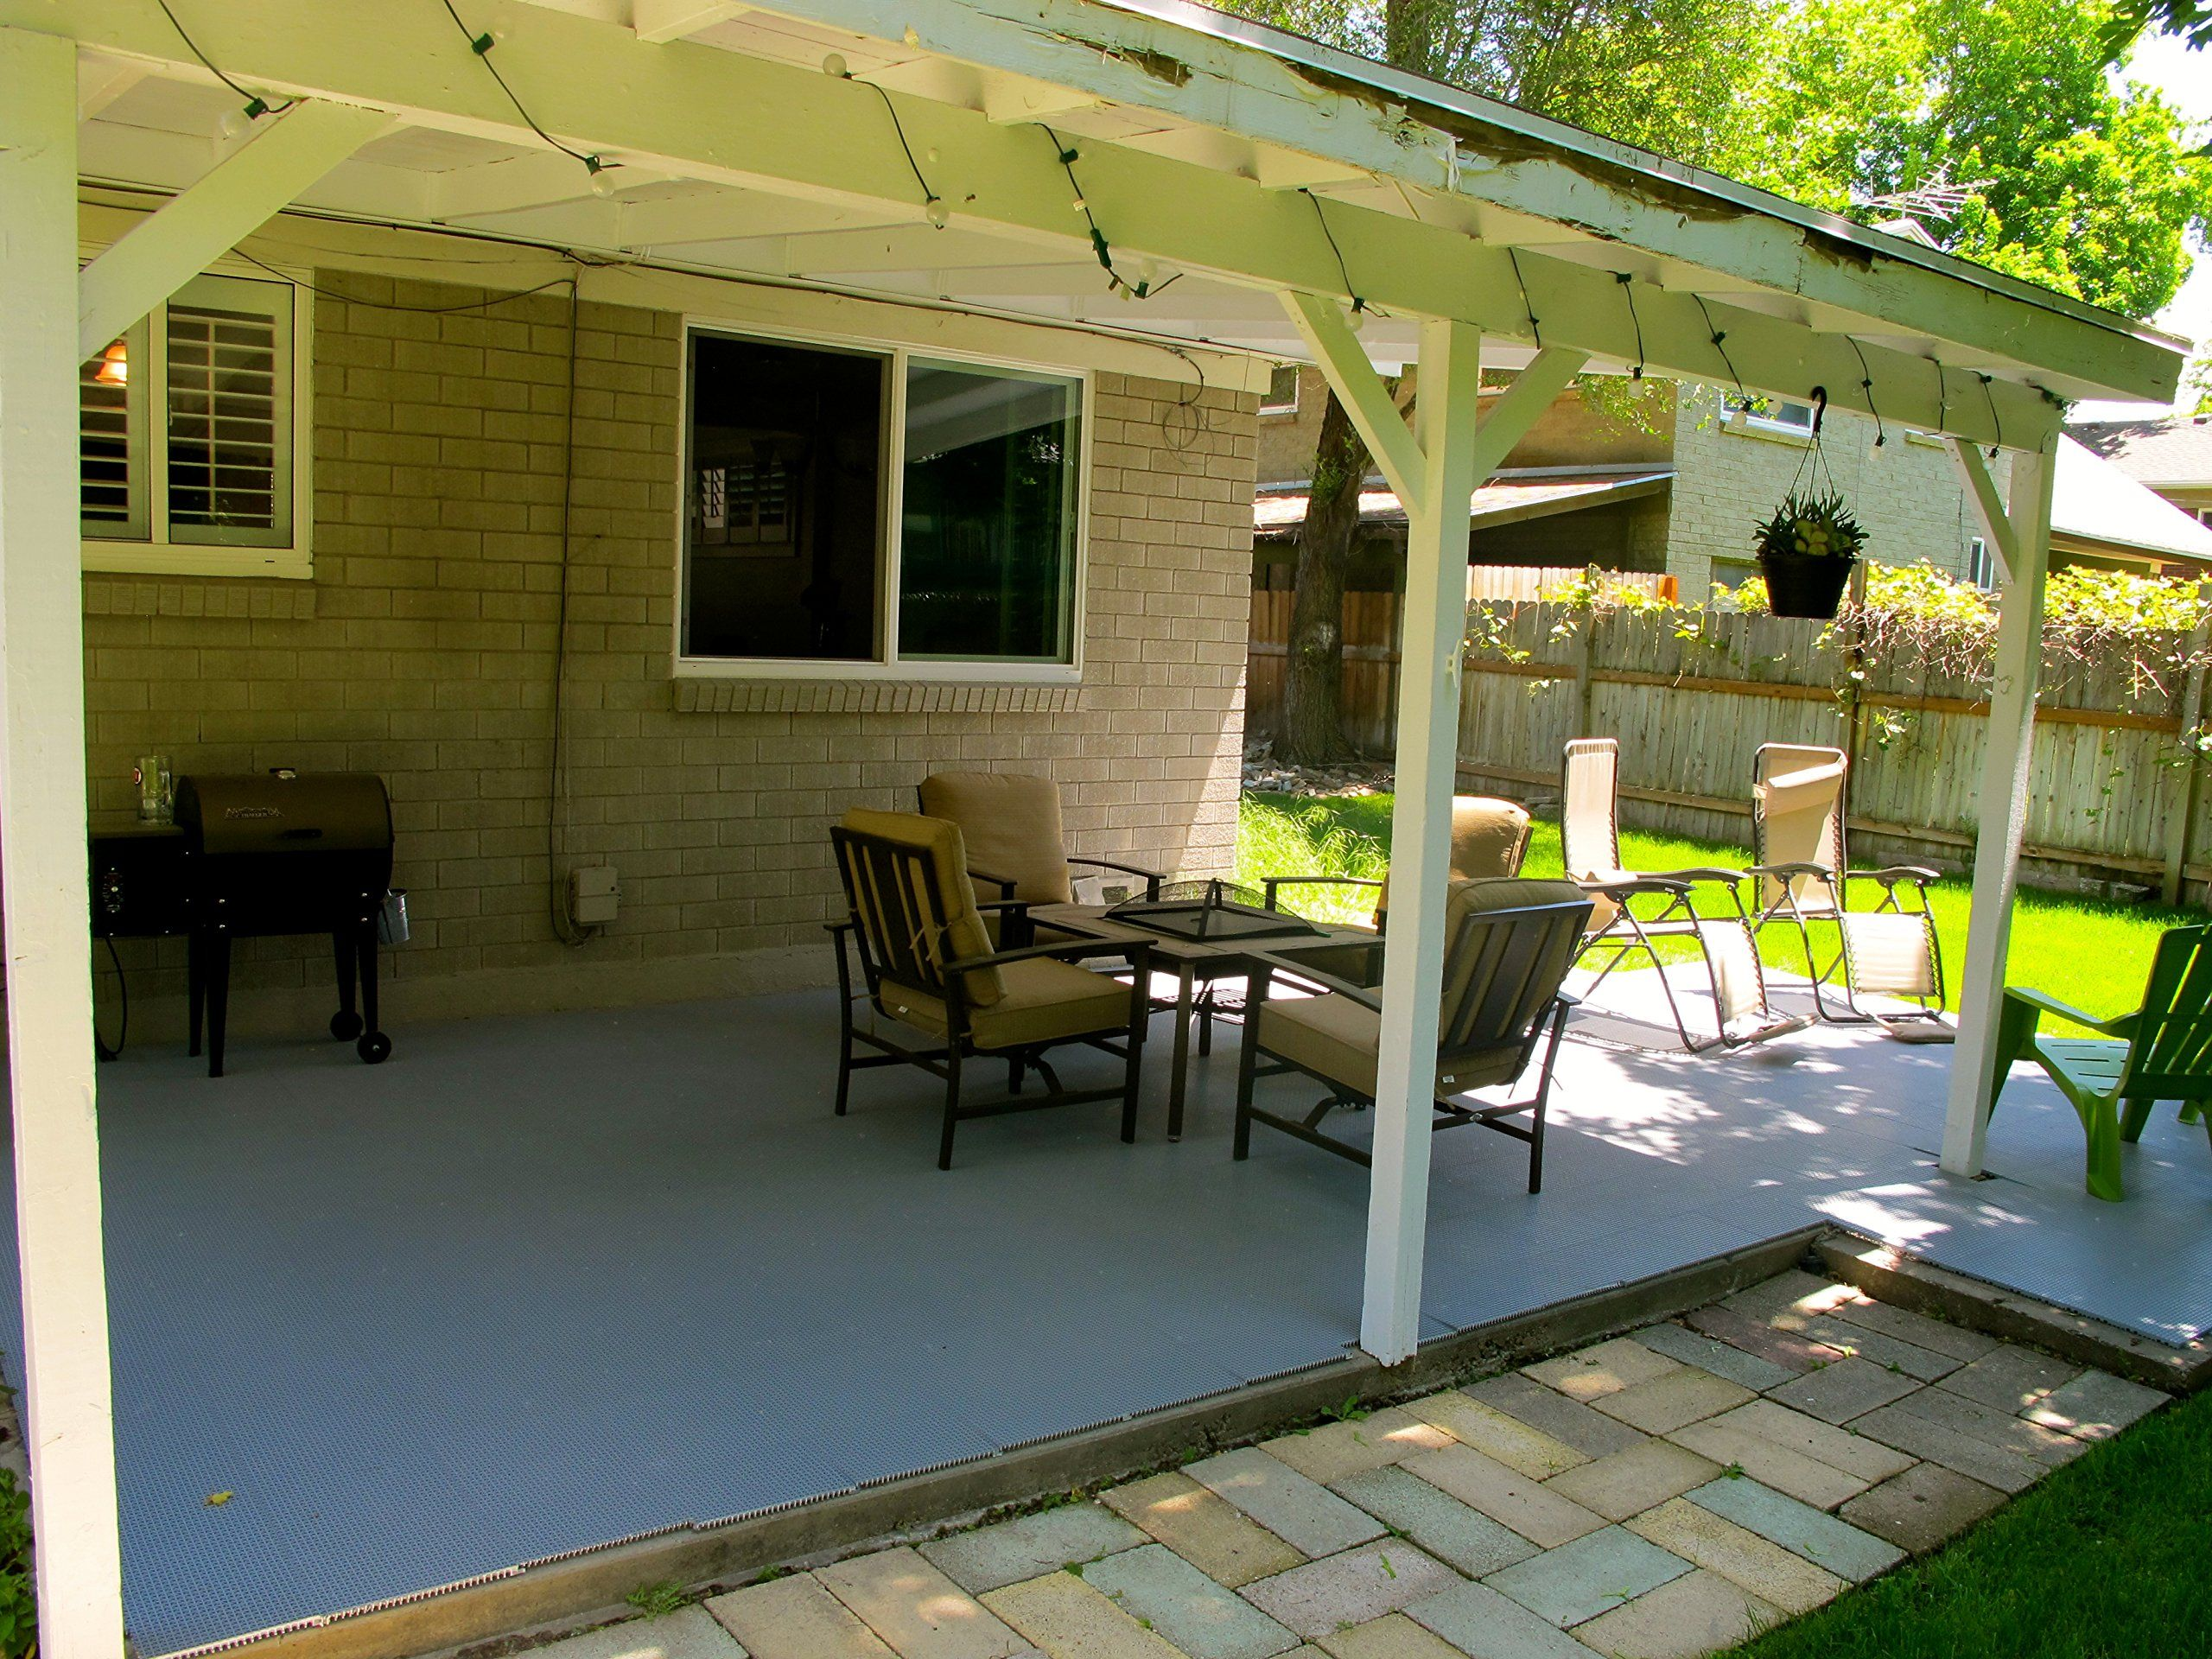 Amazon duragrid indoor outdoor interlocking 12x 12 deck and the easy to install easier to maintain flooring surface for patios and decks almost any flat space to protect or dress up your deck dailygadgetfo Gallery